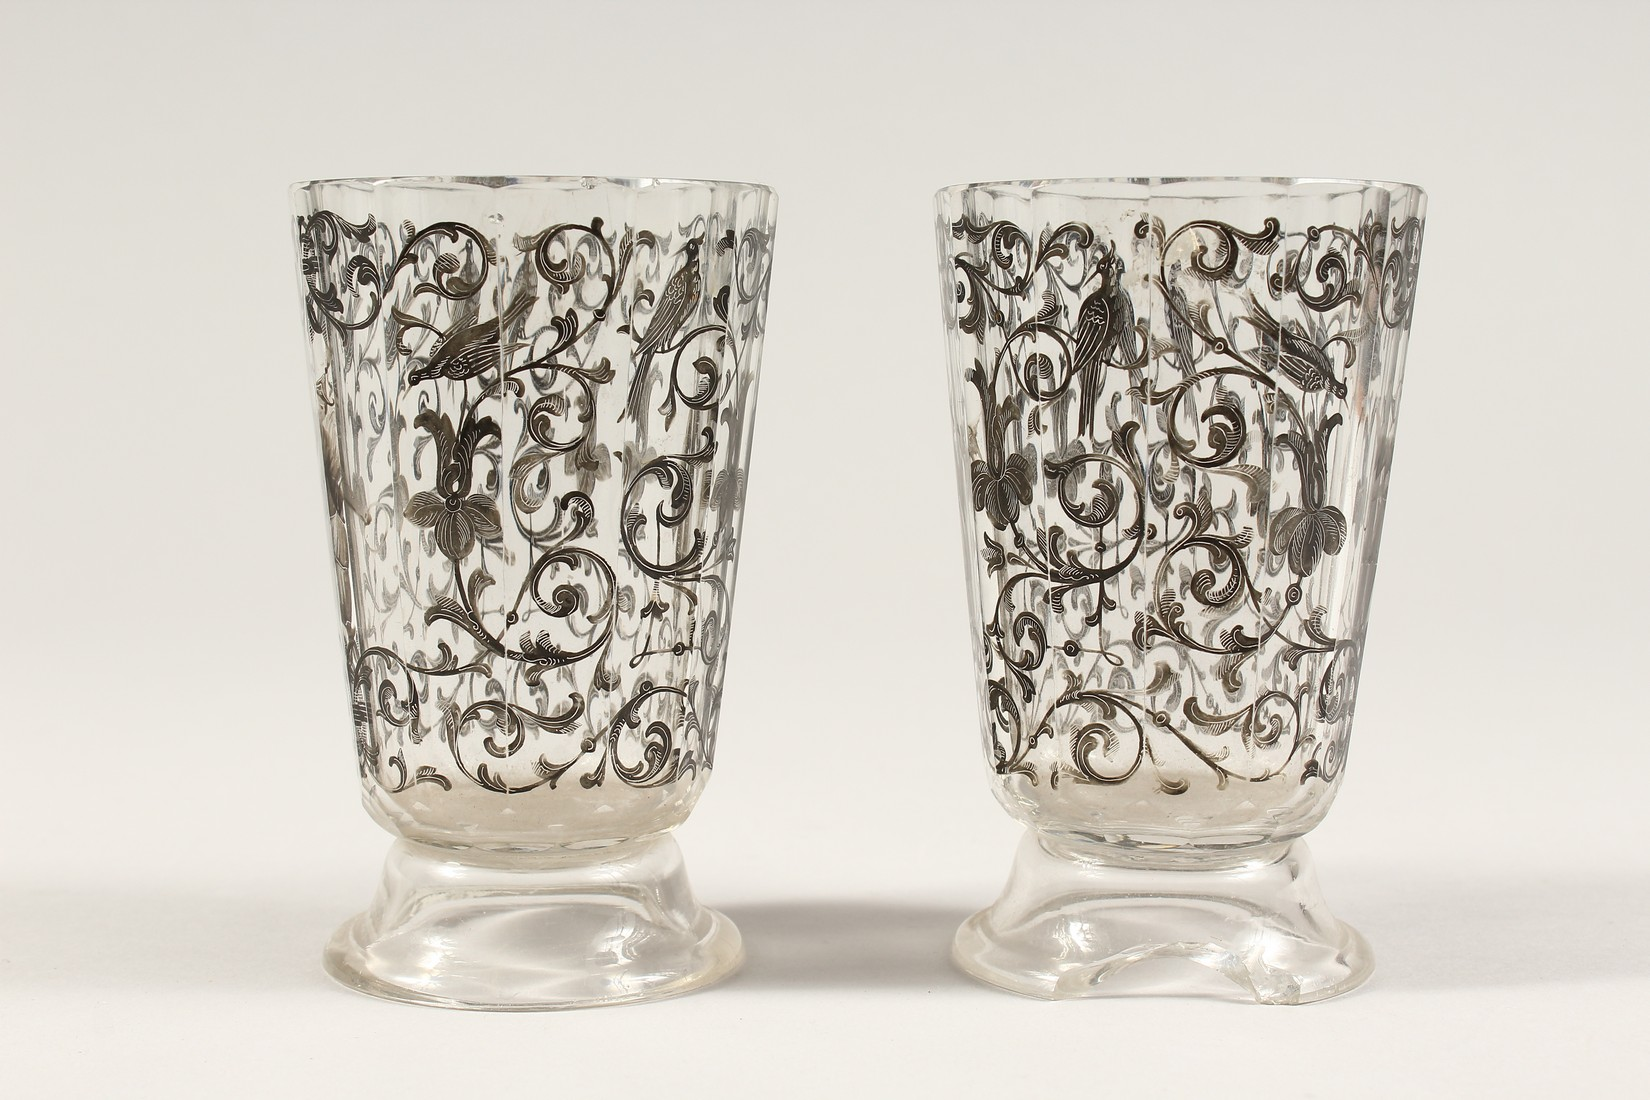 A GOOD PAIR OF BOHEMIAN GLASS TWELVE SIDED BEAKERS, painted with Turkish figures, scrolls and birch. - Image 2 of 5